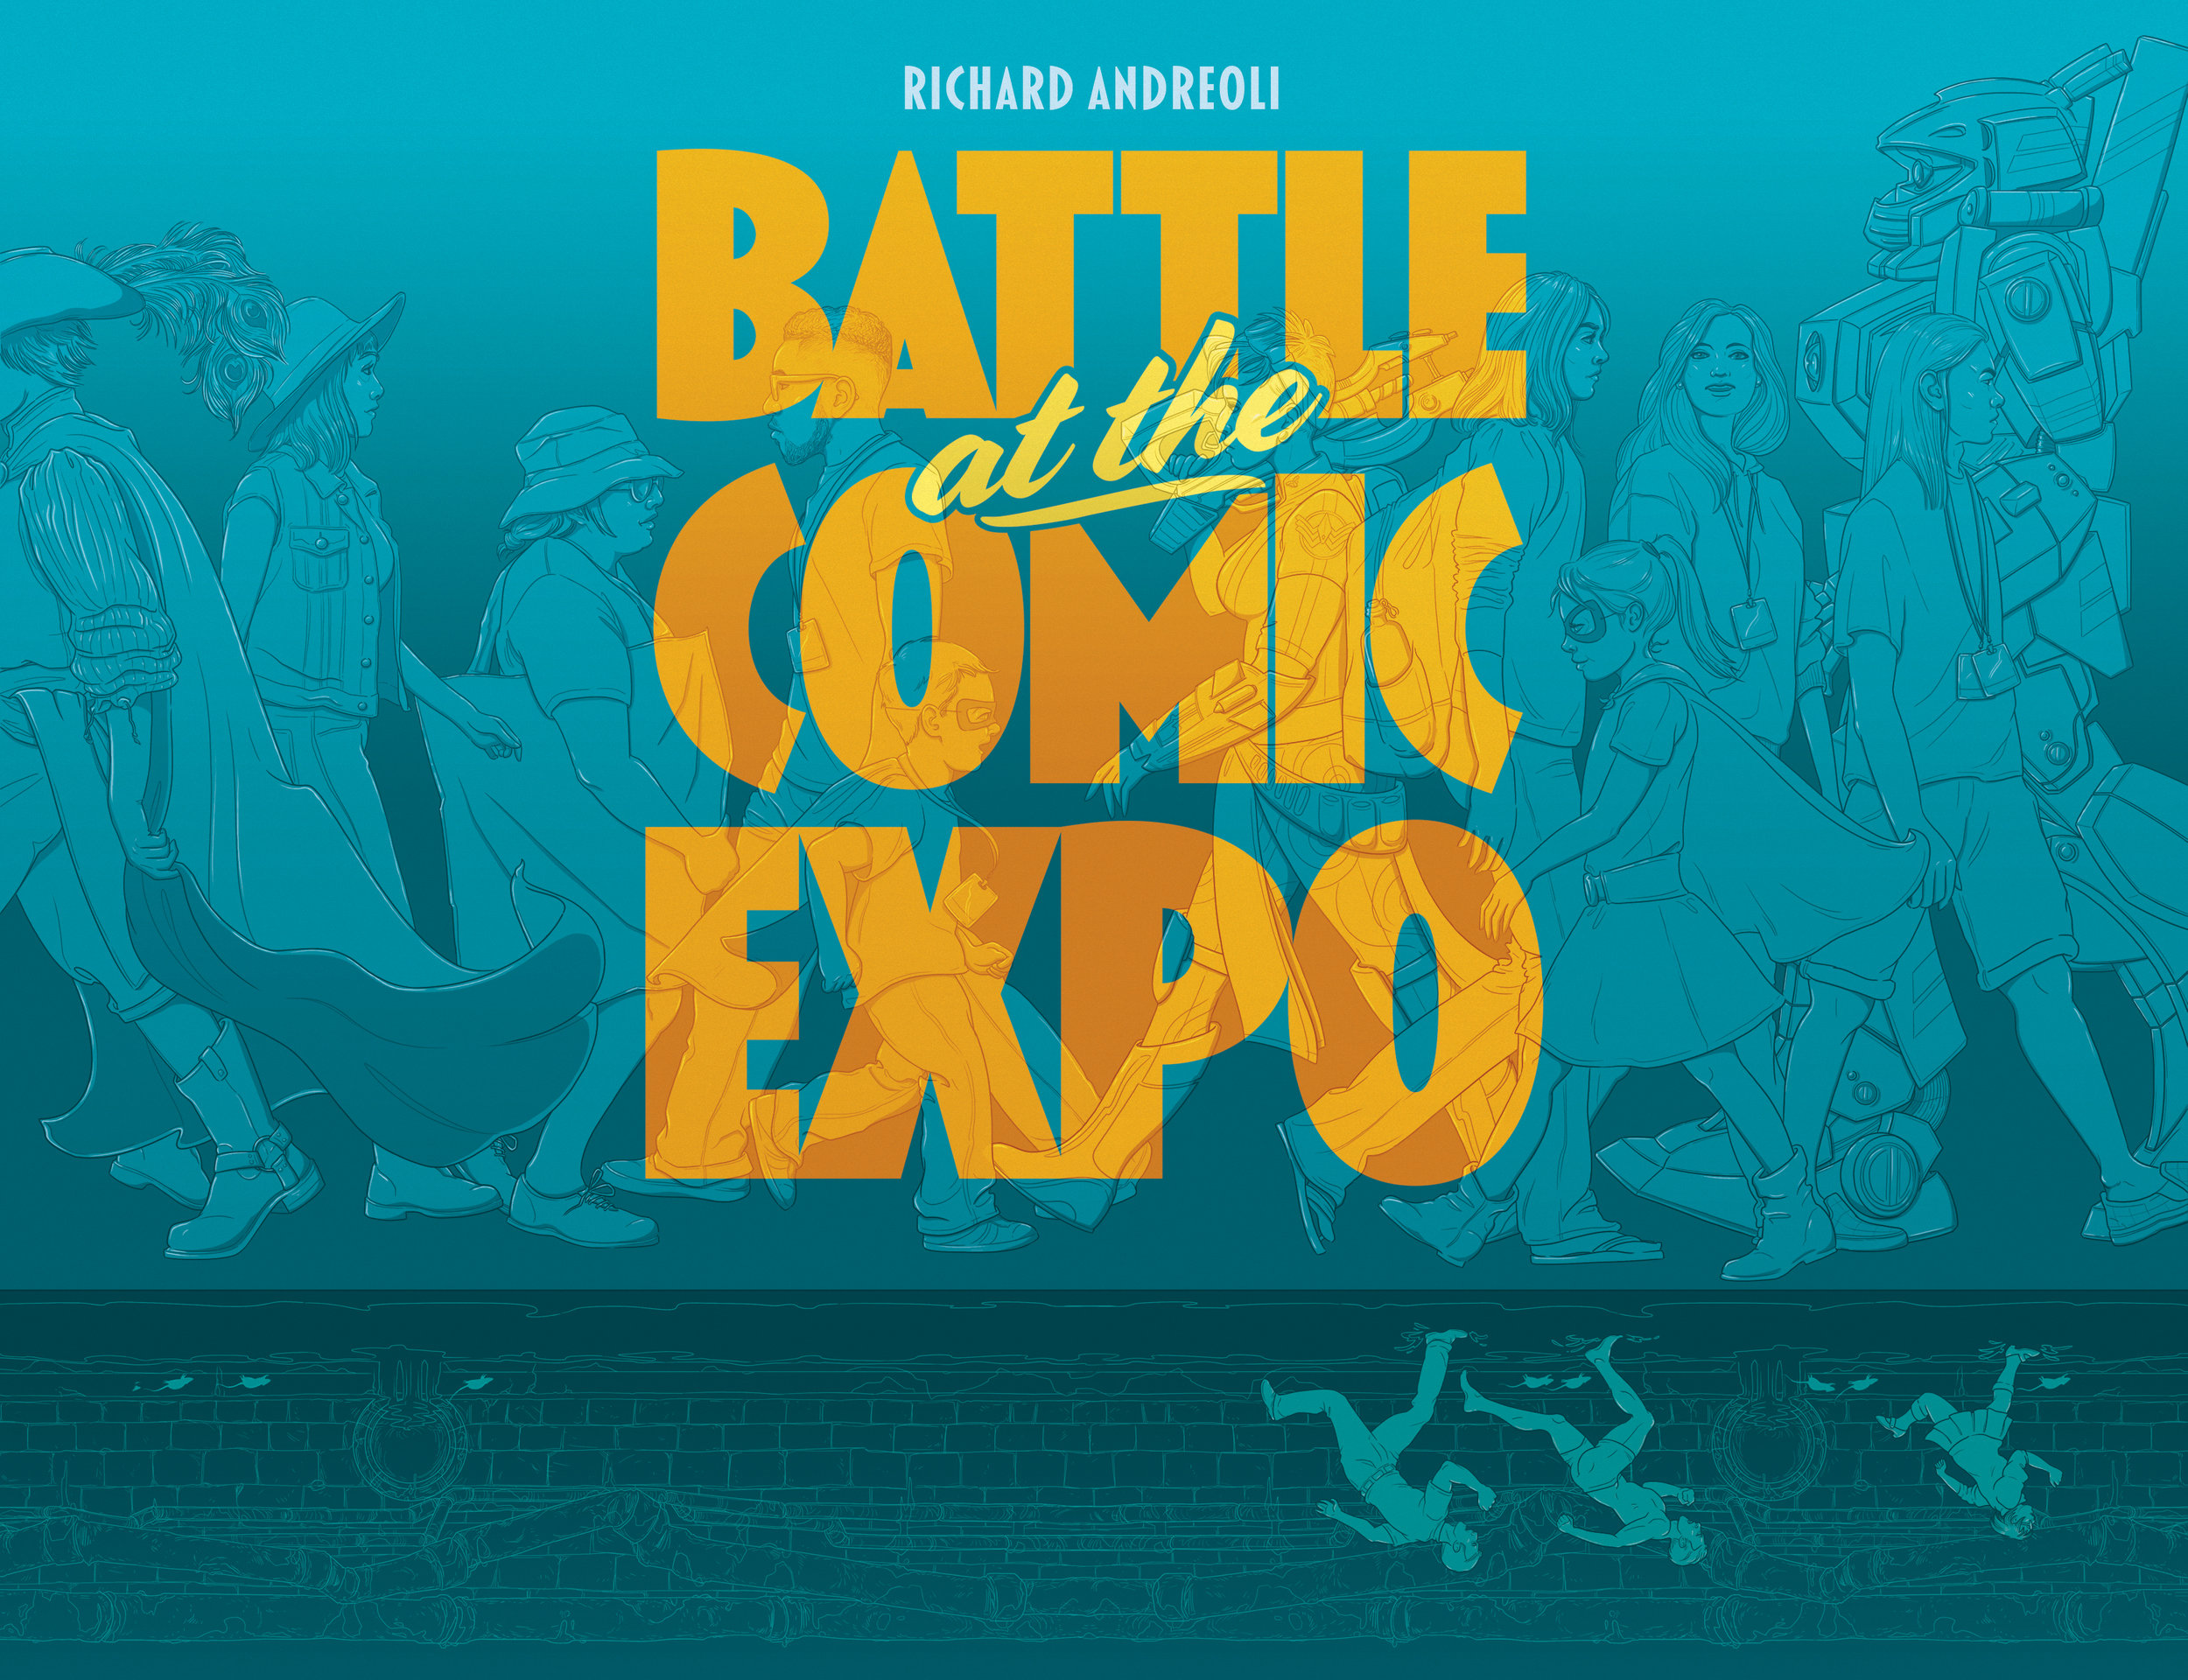 Battle at the Comic Expo front and back cover